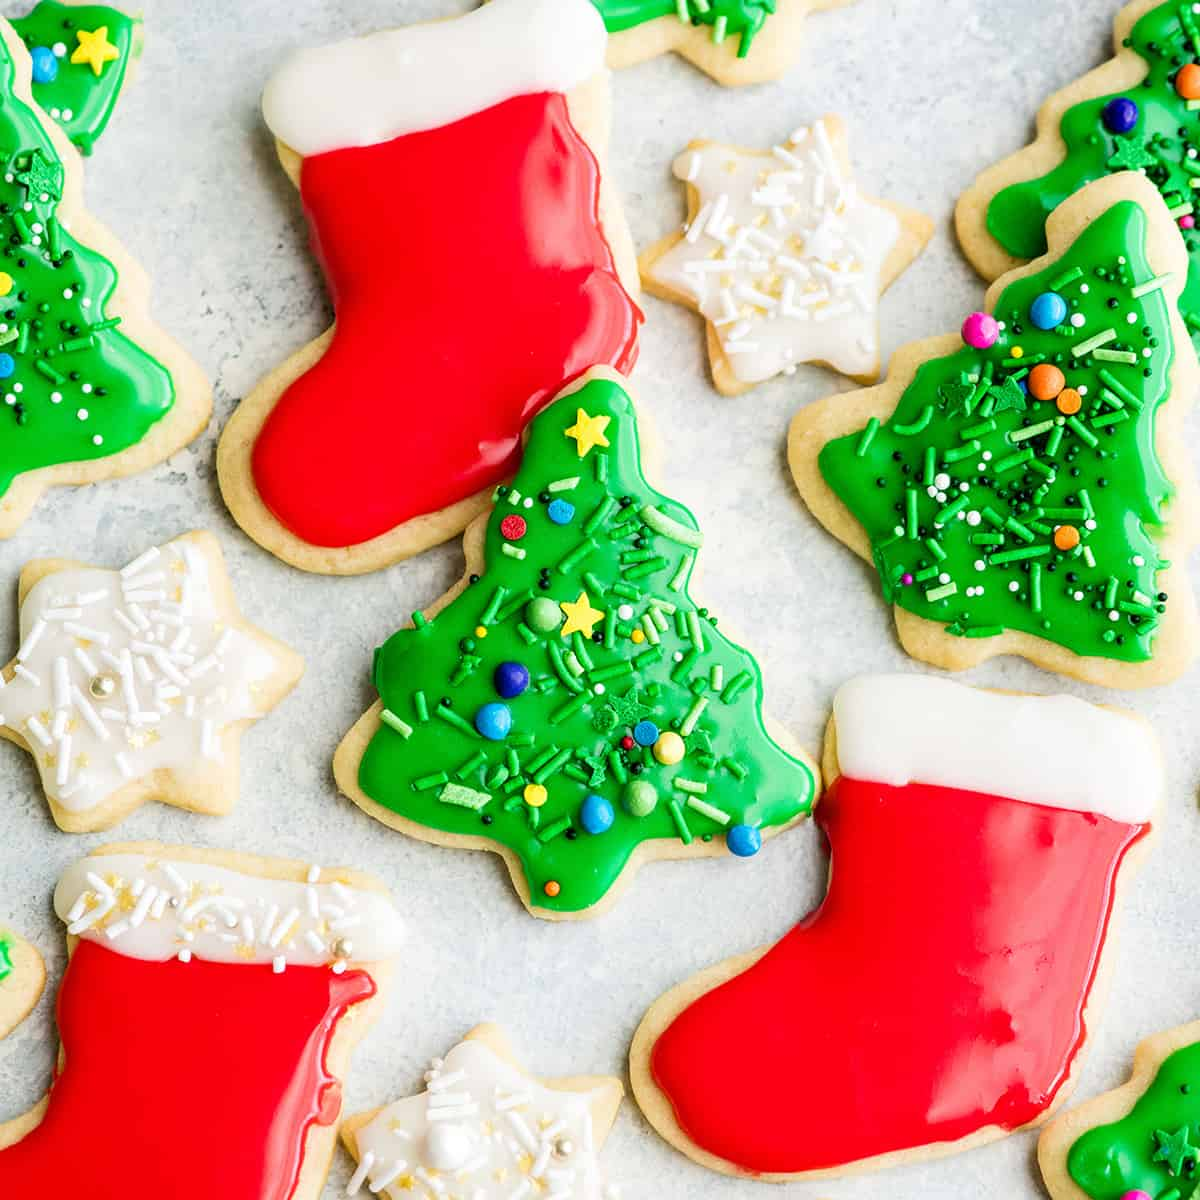 overhead view of Cut Out Sugar Cookies laying flat on a surface. Two green Christmas trees, two red and white stockings and two white stars with sprinkles.